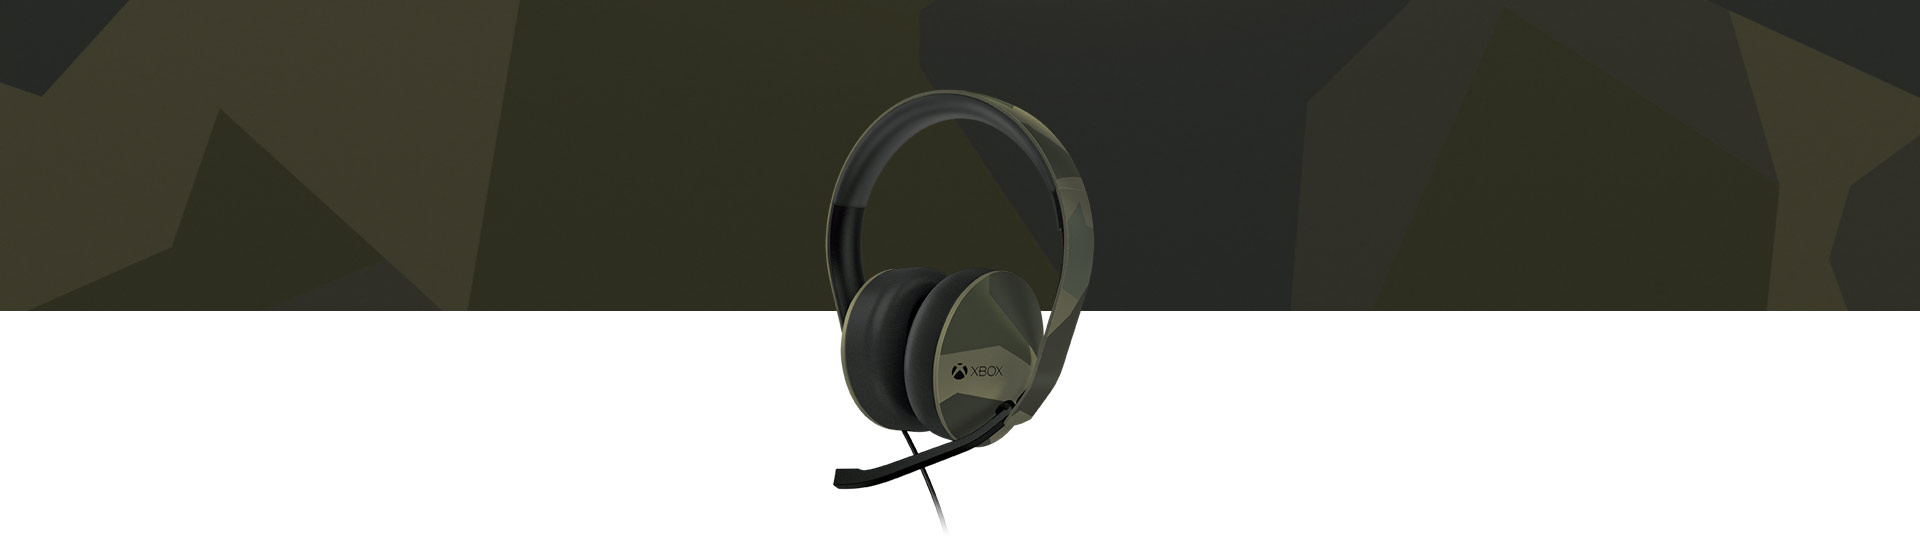 Xbox One Special Edition Armed Forces Stereo Headset